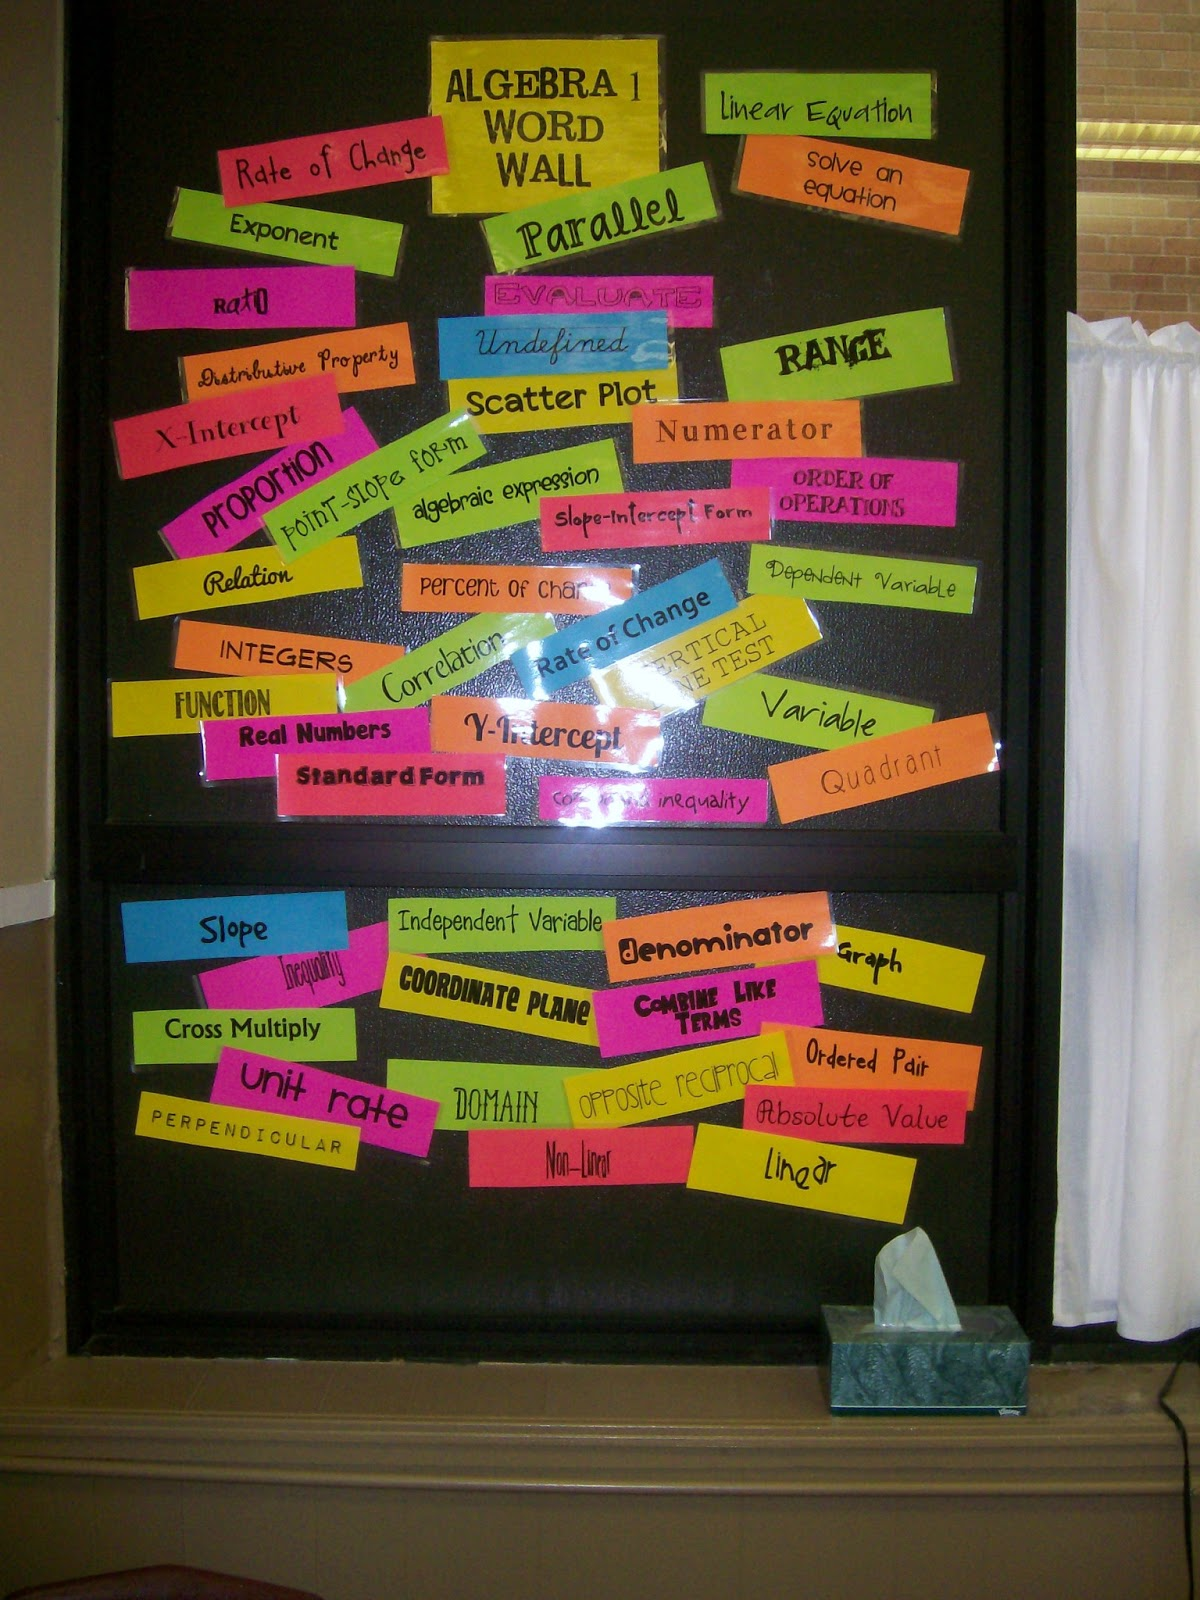 Word Wall Reflection